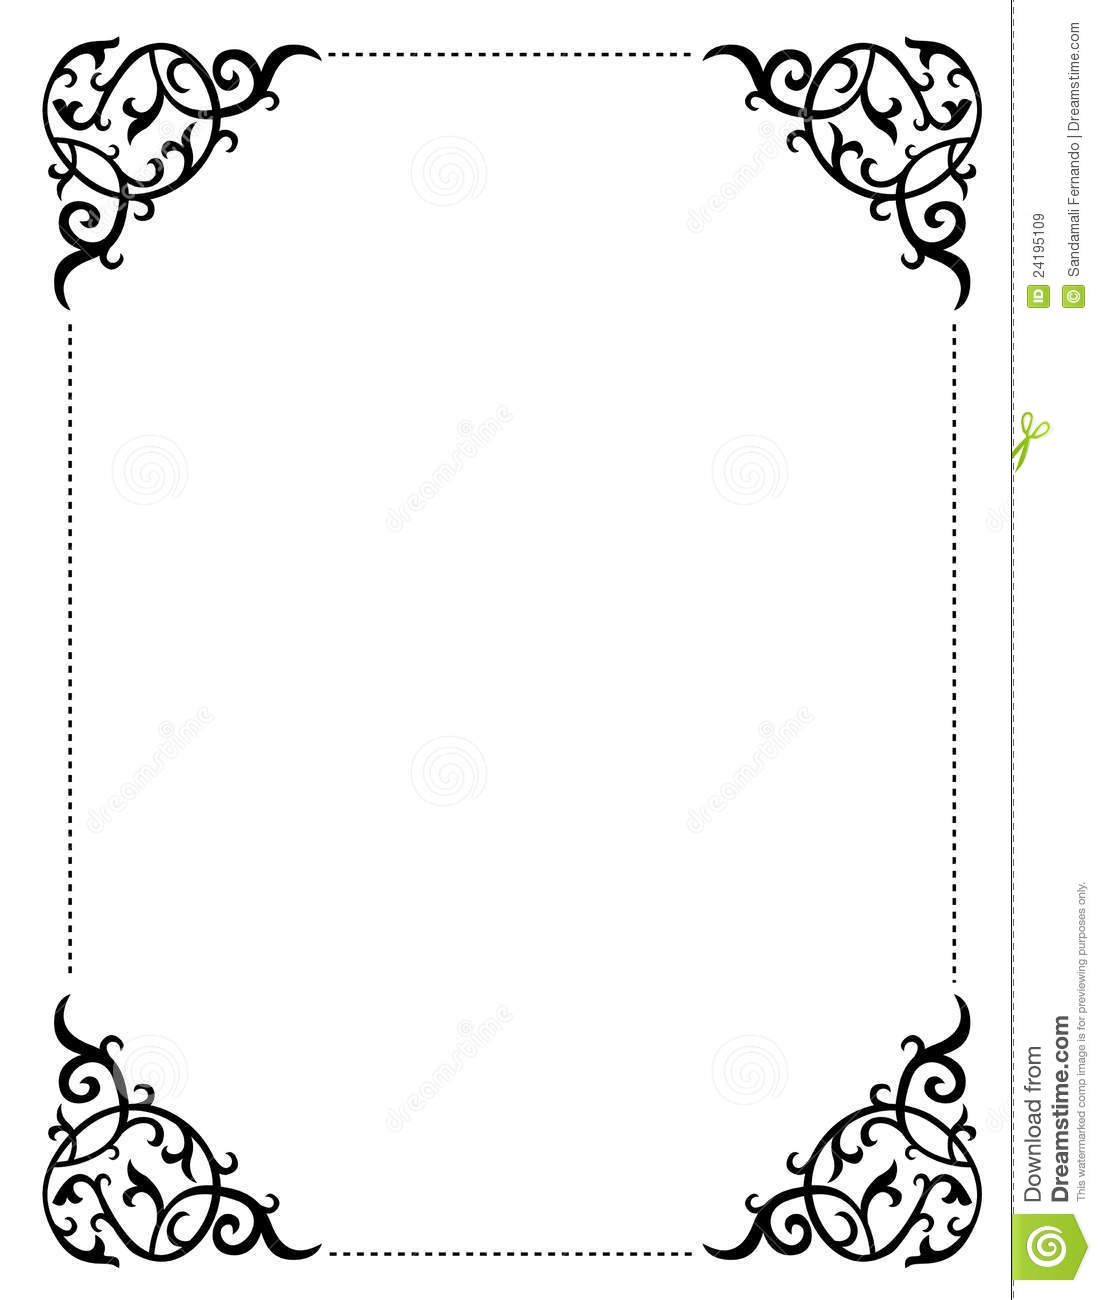 This is a picture of Free Printable Border Paper with template